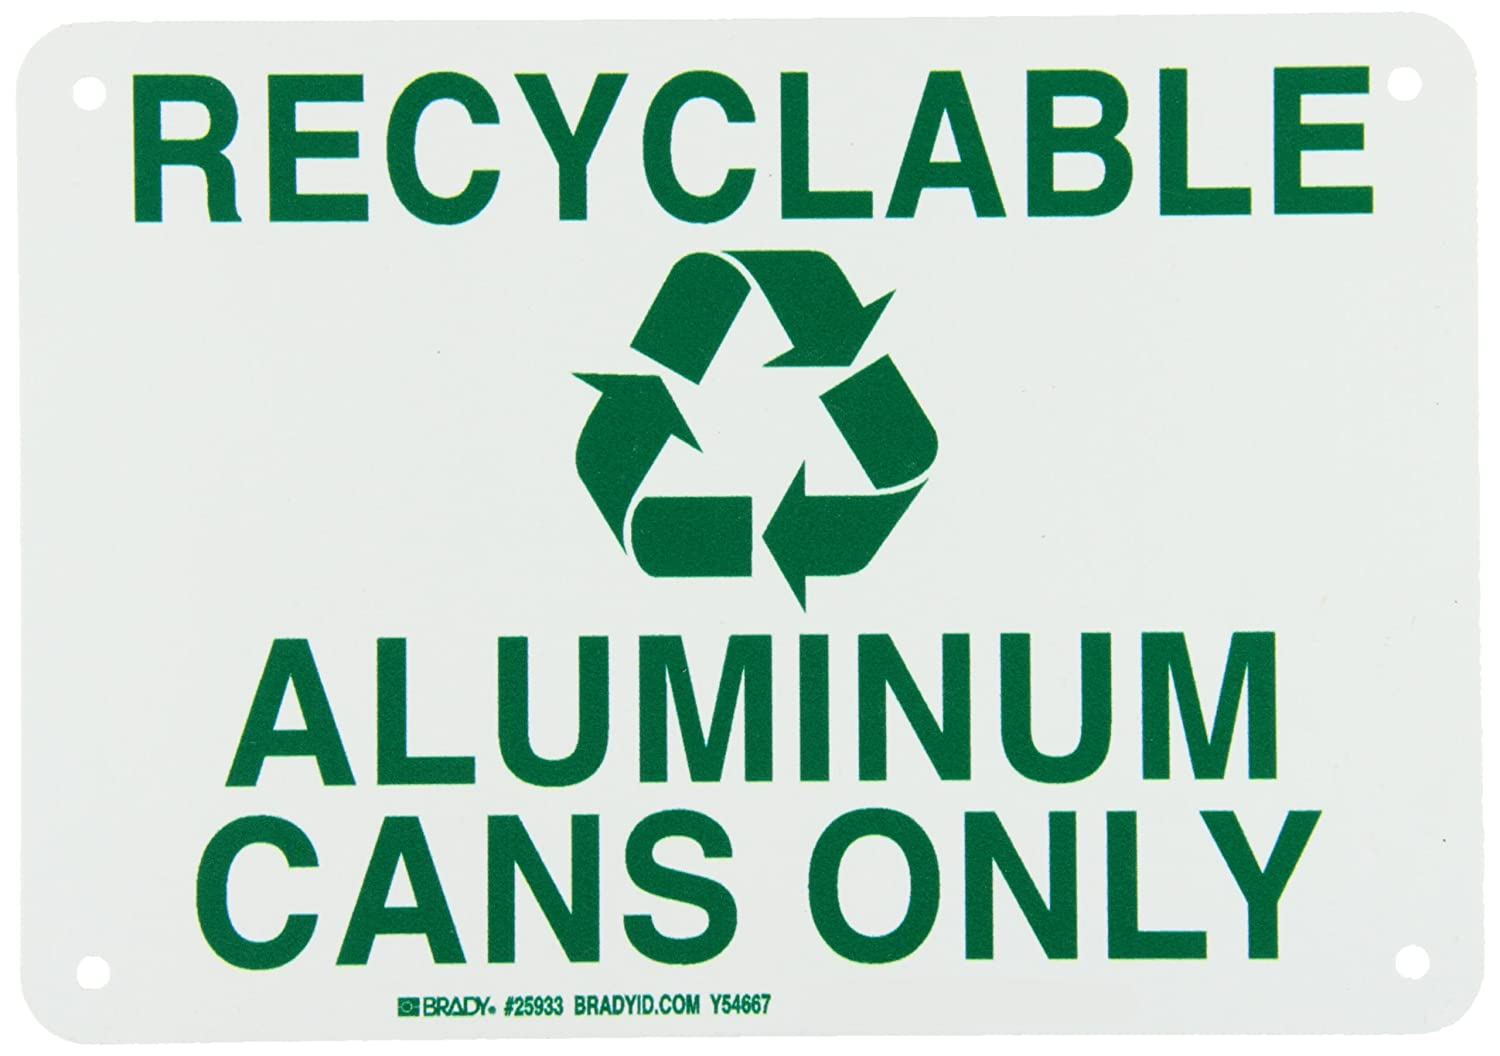 Legend Recyclable Aluminum Cans Only Brady 25933 Plastic Recycle /& Environment Sign with Picto with Picto 7 X 10 7 X 10 Legend Recyclable Aluminum Cans Only